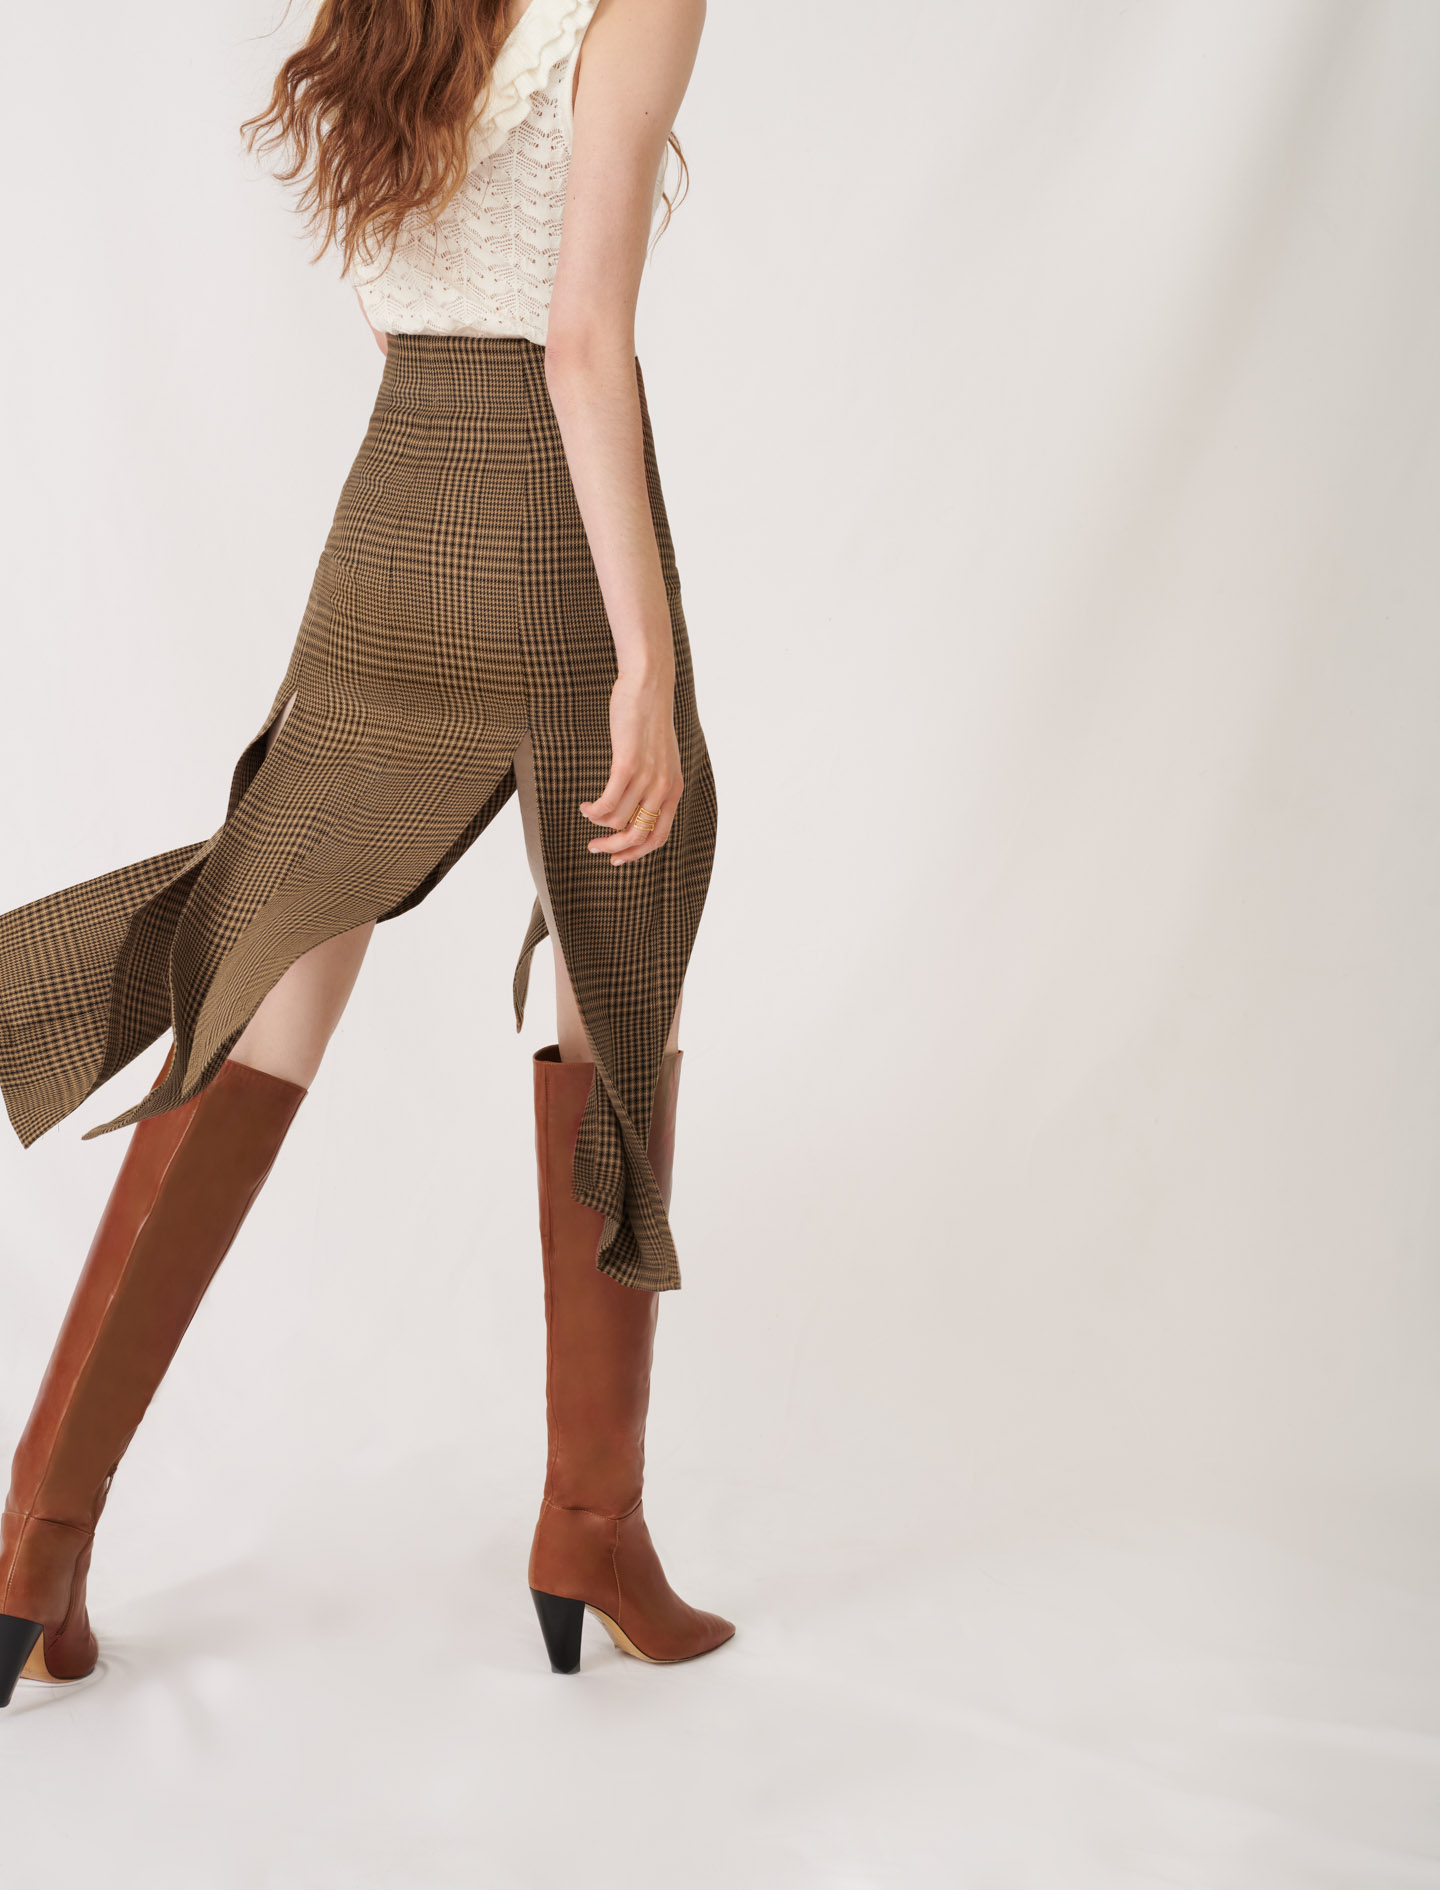 Asymmetric skirt with flaps and checks  - Brown